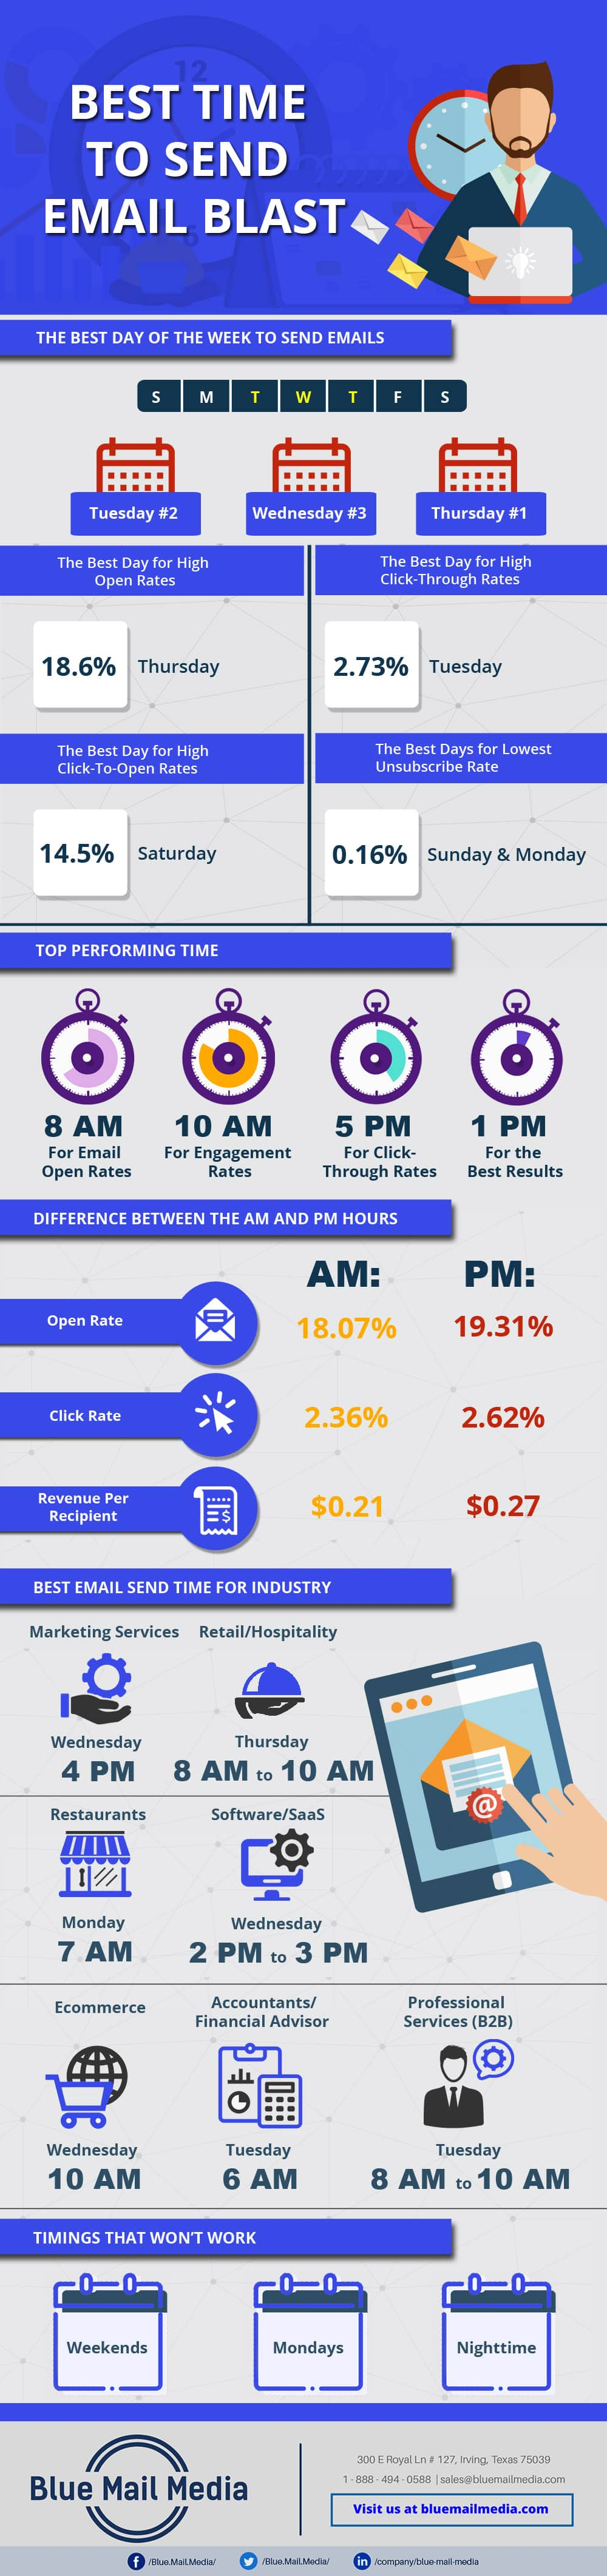 Best Time To Send Email Infographic